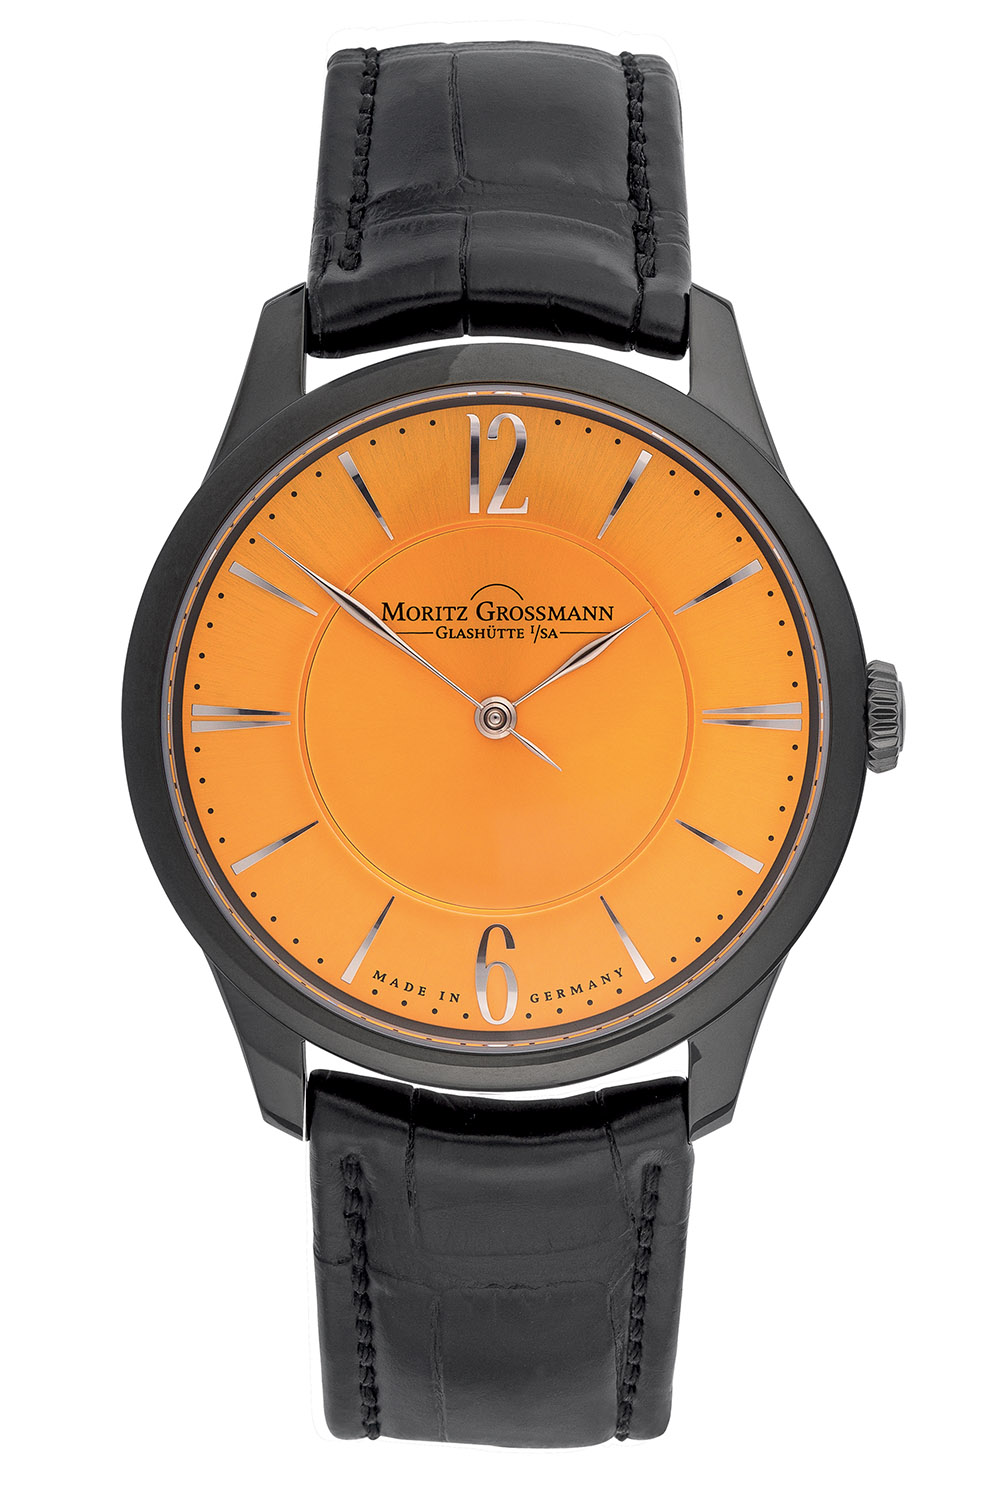 Moritz Grossmann 10th anniversary online auction Christies - 6